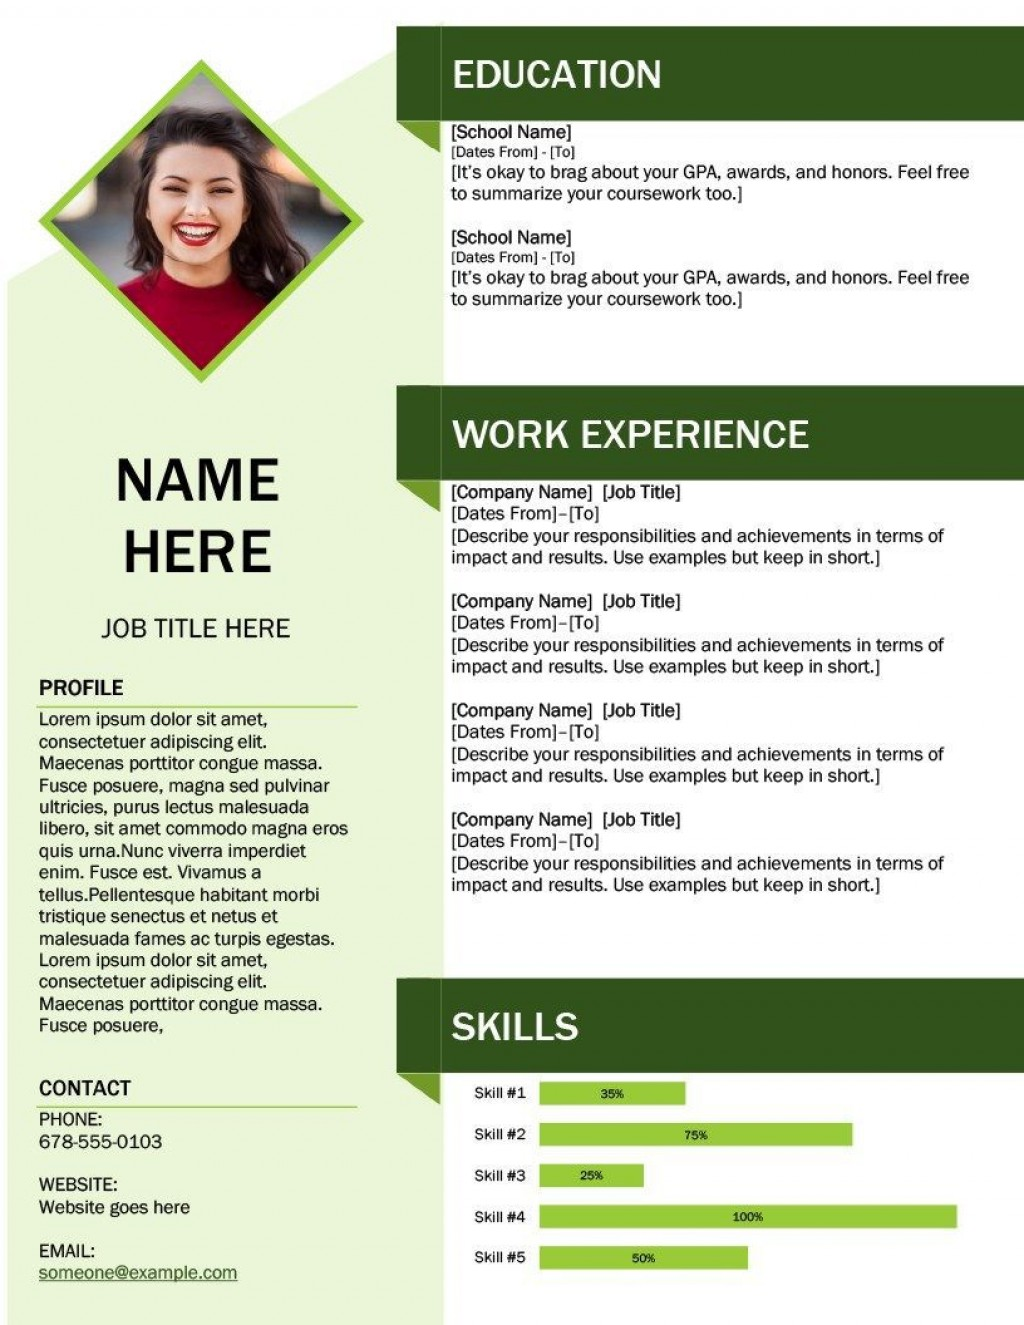 003 Marvelou Word Resume Template Free Download Idea  M Creative Curriculum Vitae CvLarge